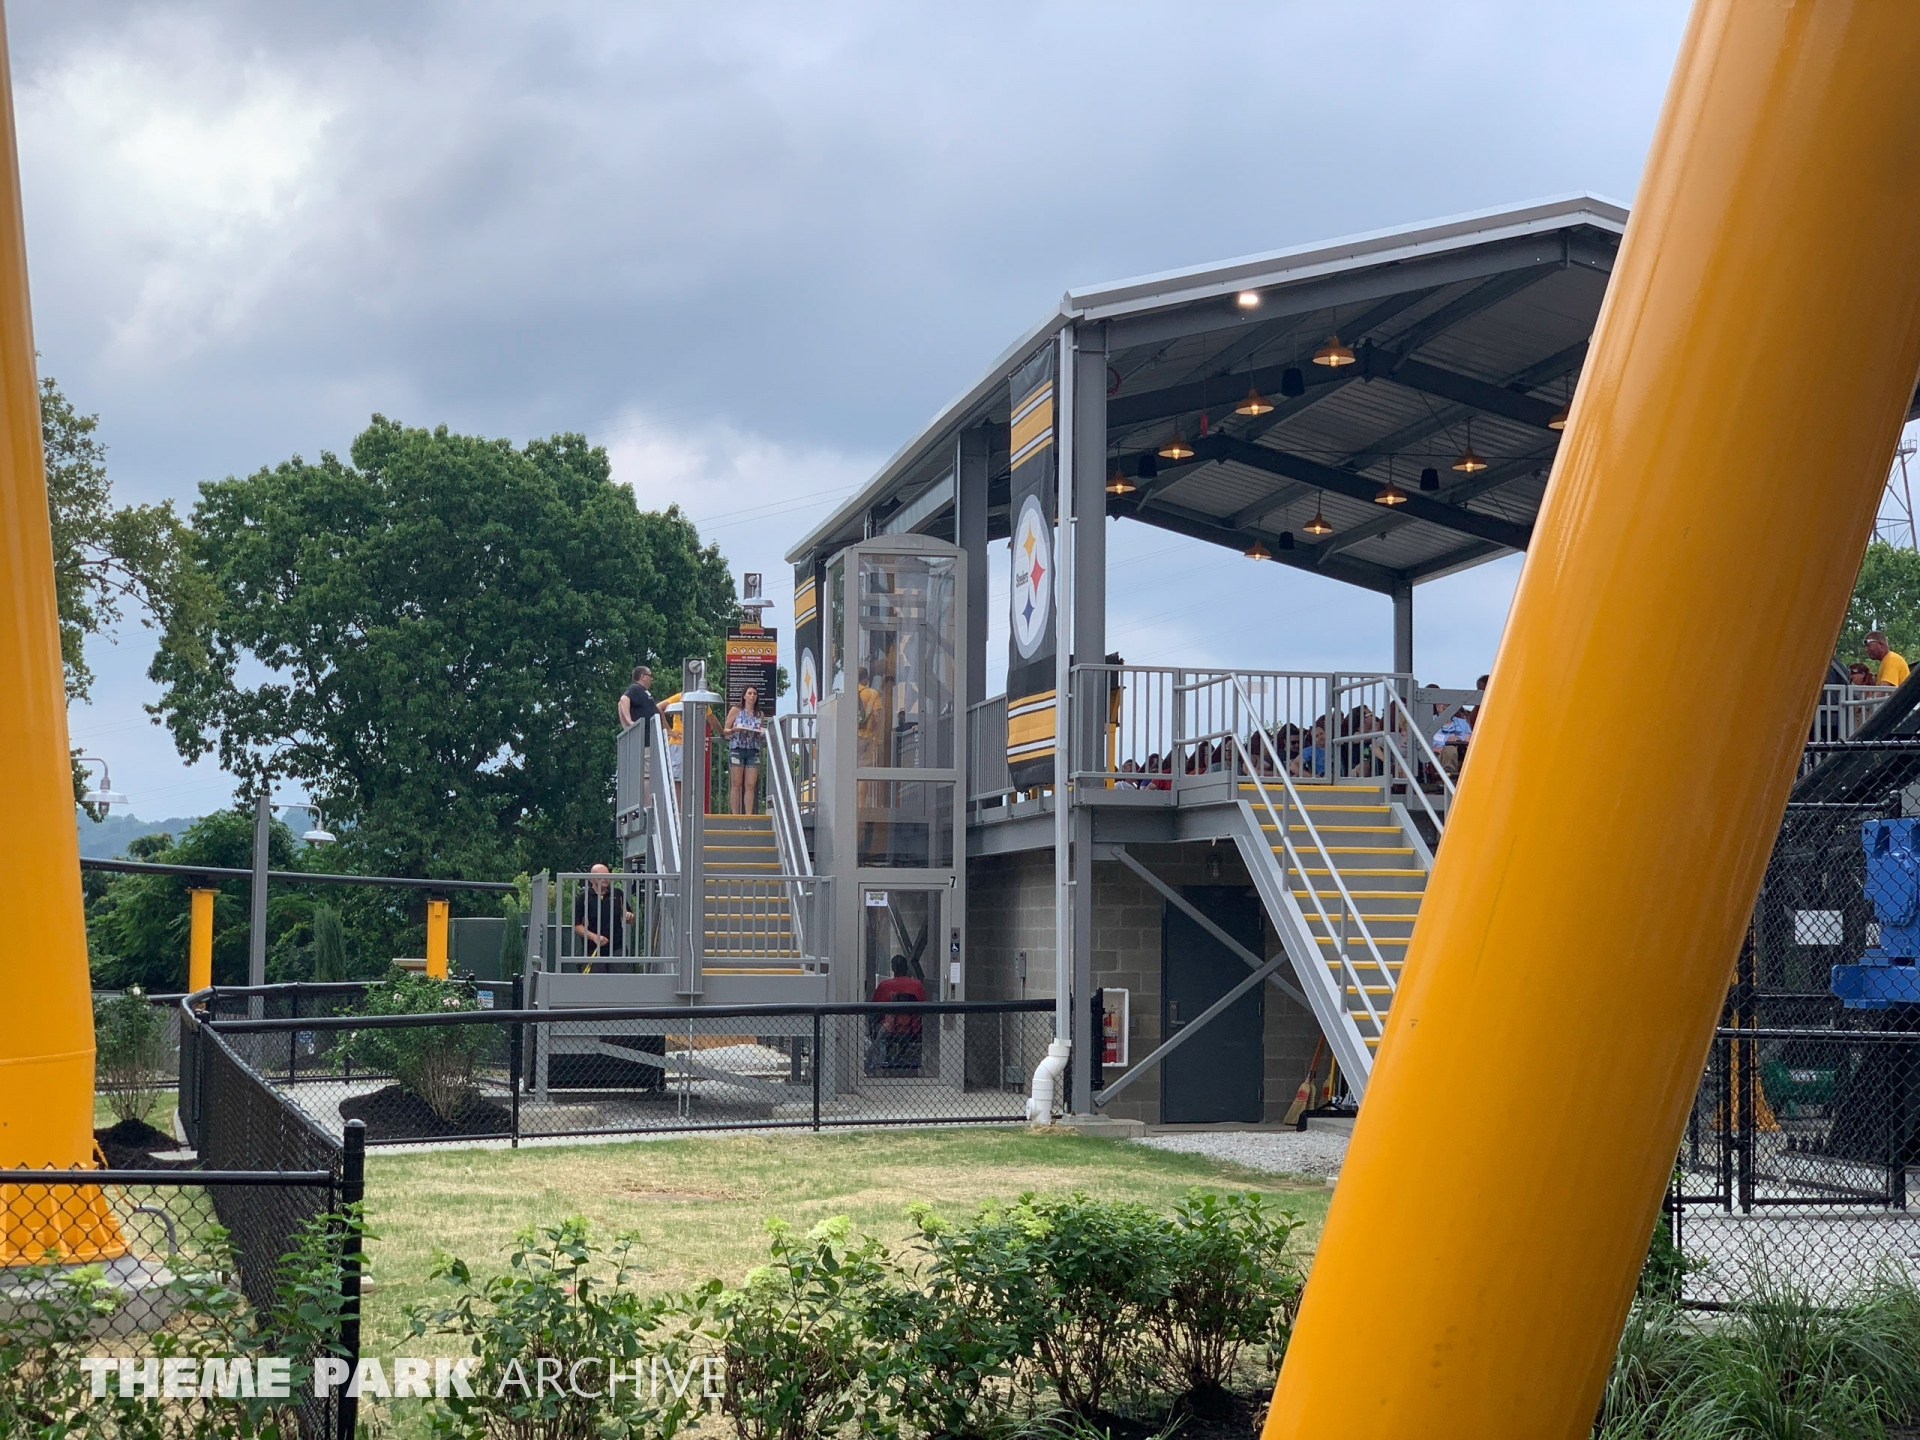 Steel Curtain at Kennywood